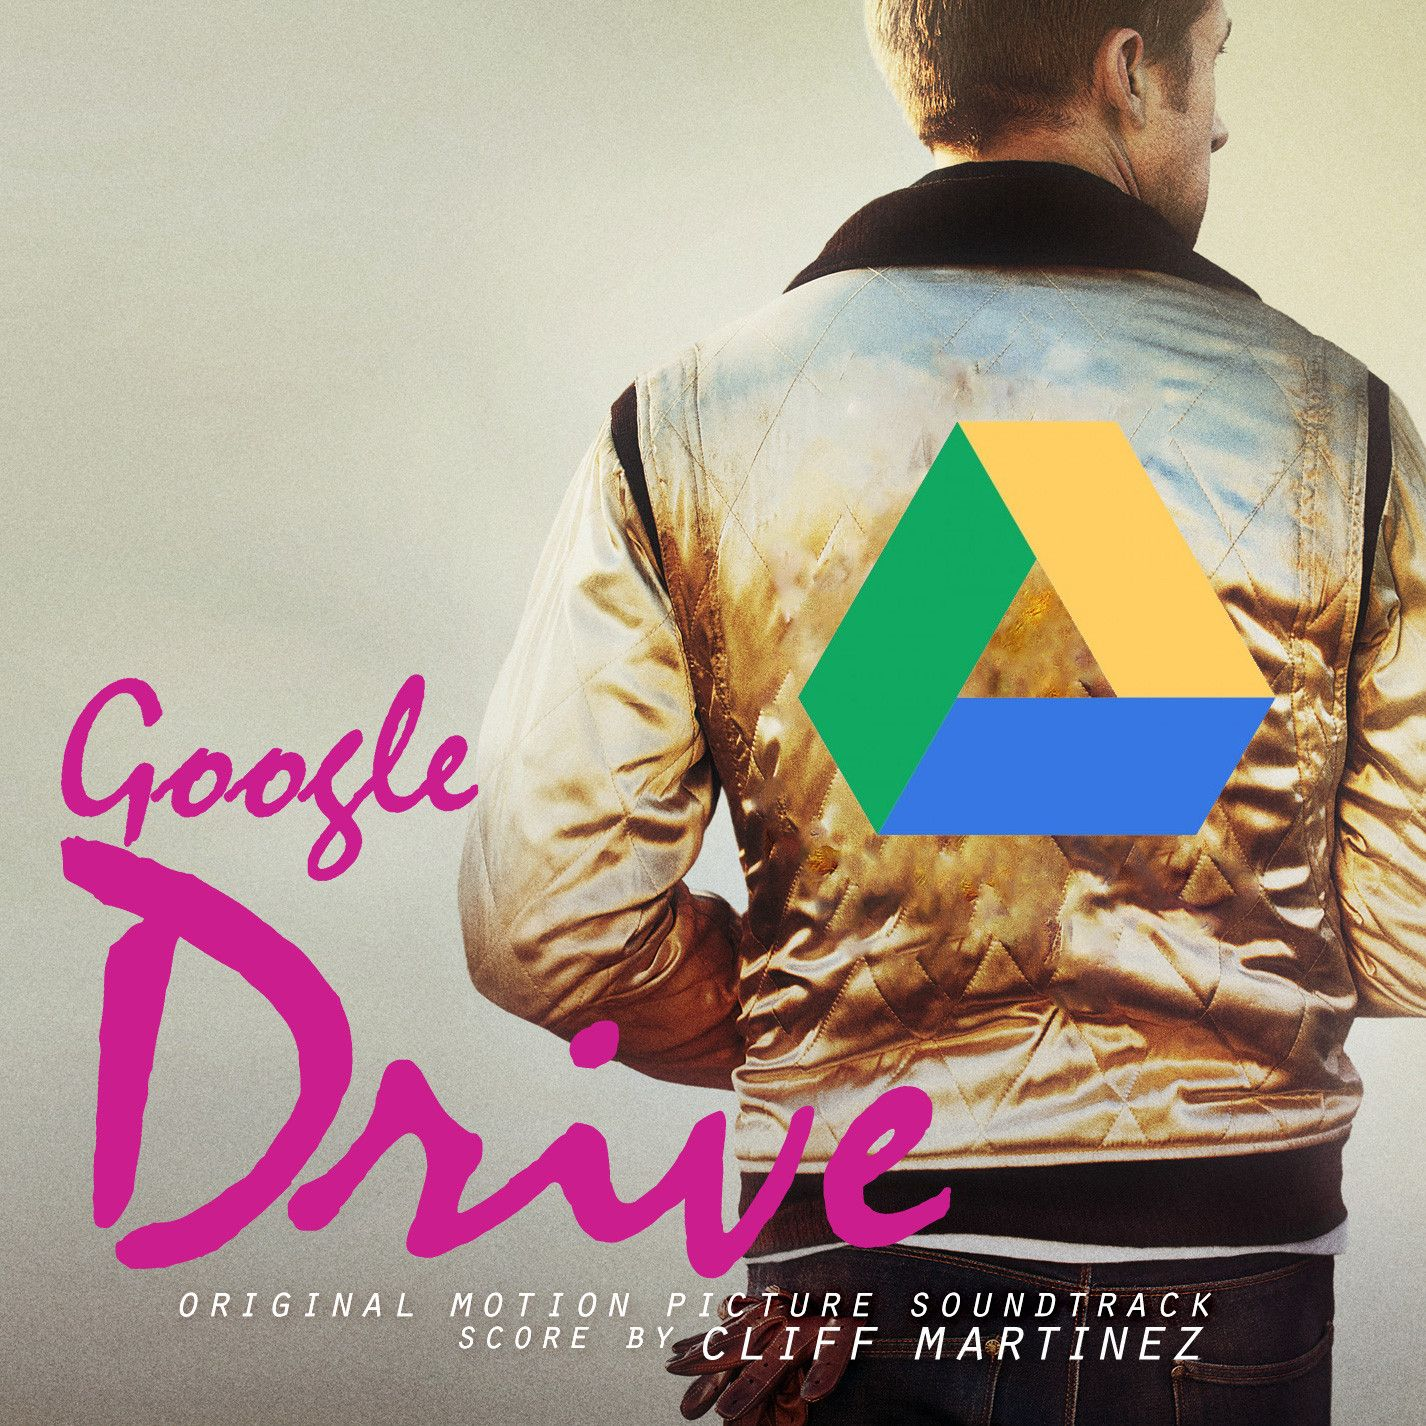 Ryan Gosling in    GOOGLE DRIVE! | Geek Culture | Google